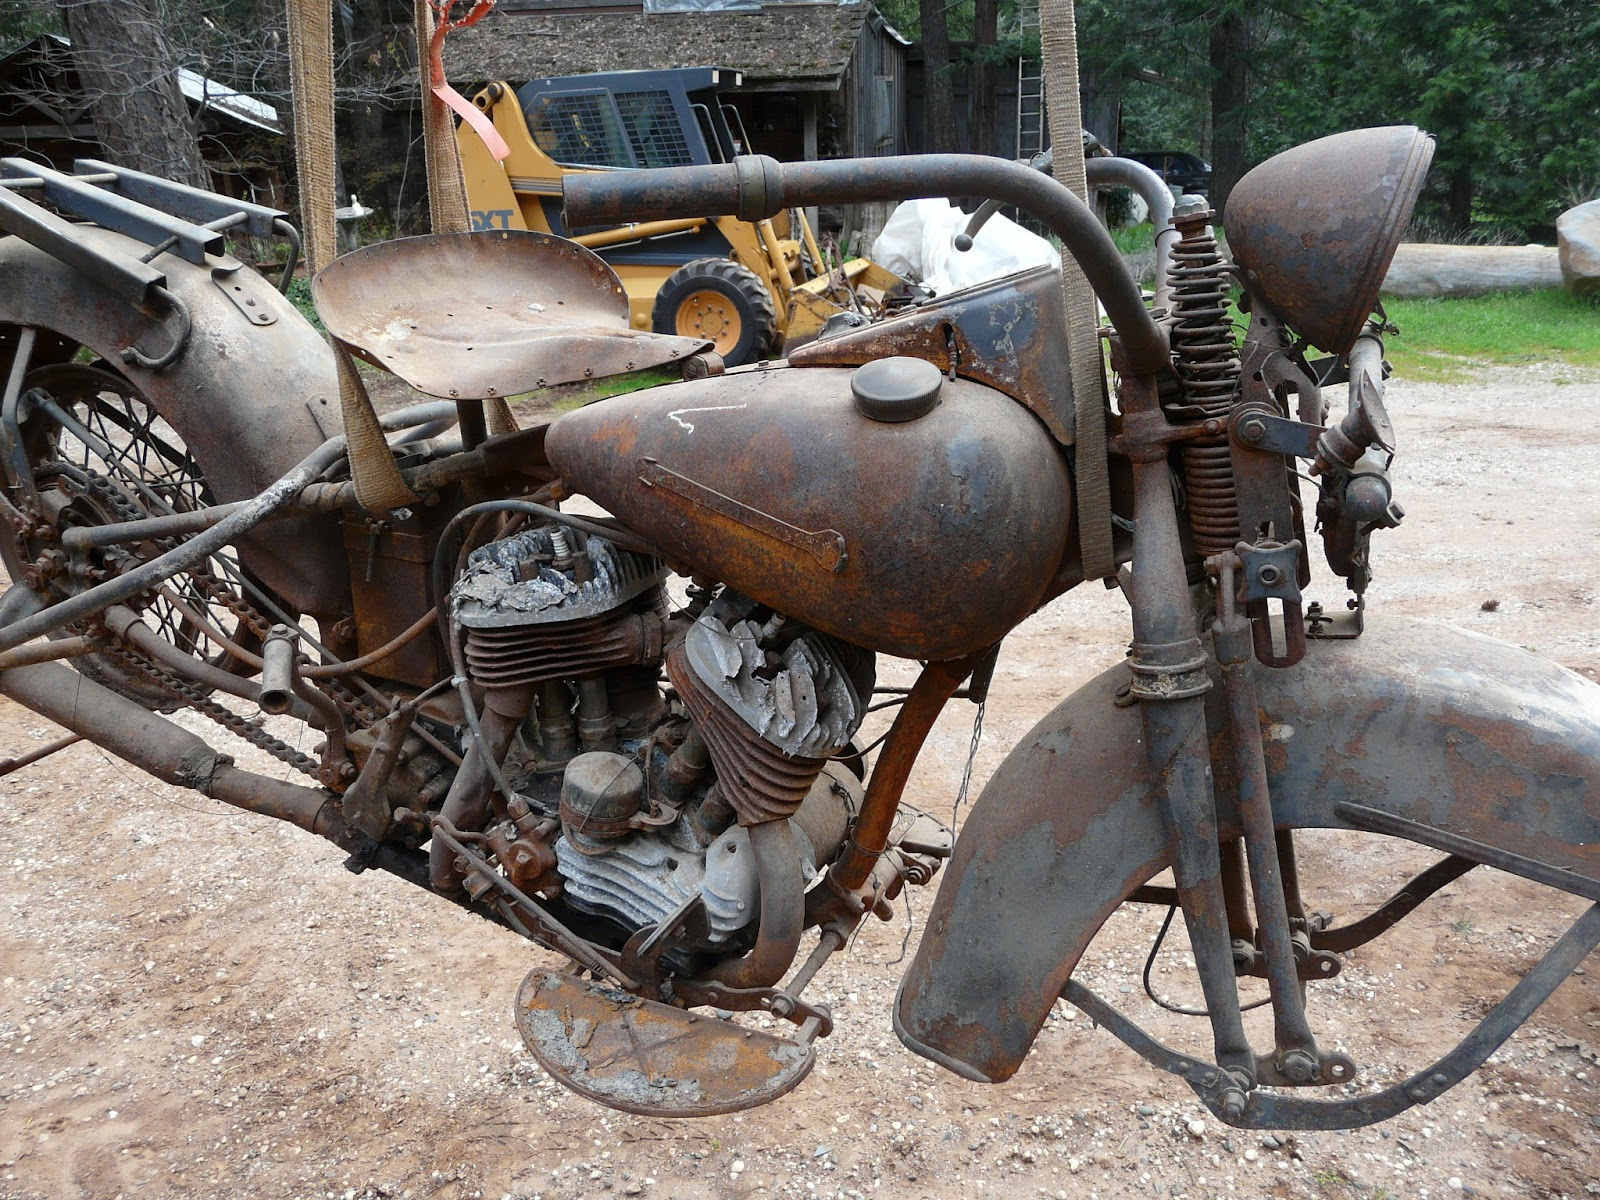 Rusty 1950 Harley Flathead Motorcycle Right View